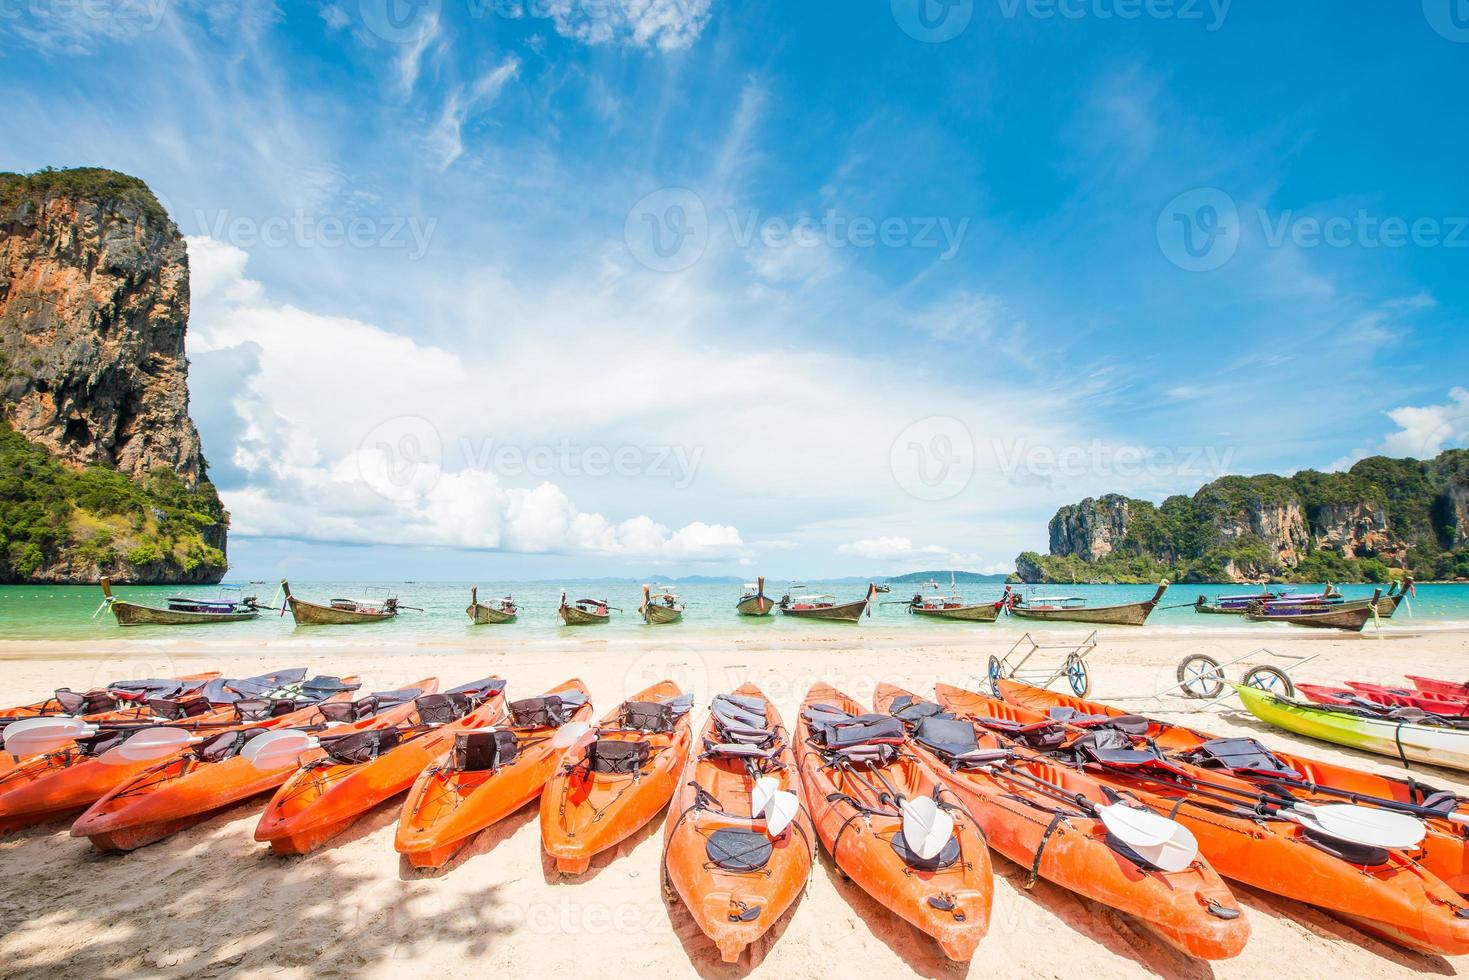 phuket james bond island phang nga foto